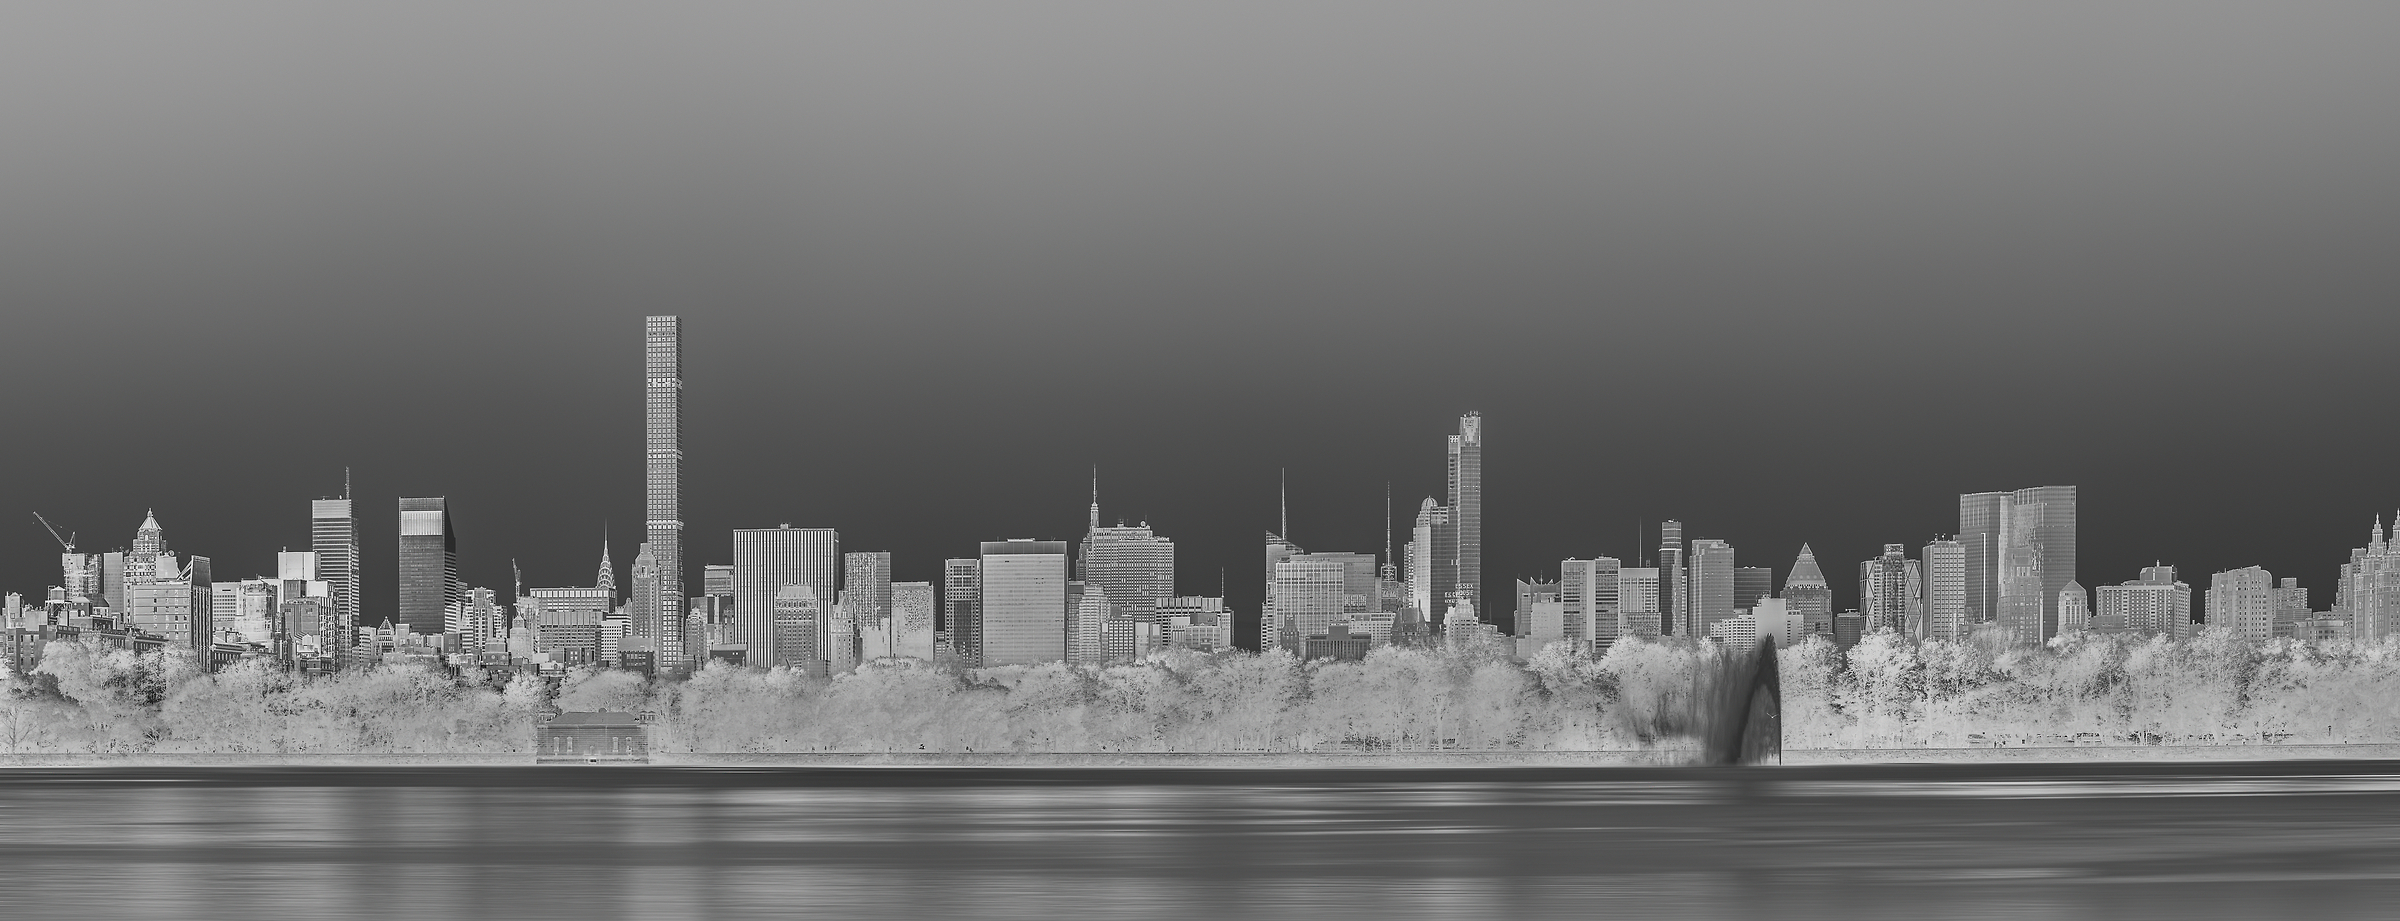 173 megapixels! A very high definition cityscape VAST photo of the Midtown Manhattan city skyline in New York City from the reservoir in Central Park; created by Dan Piech